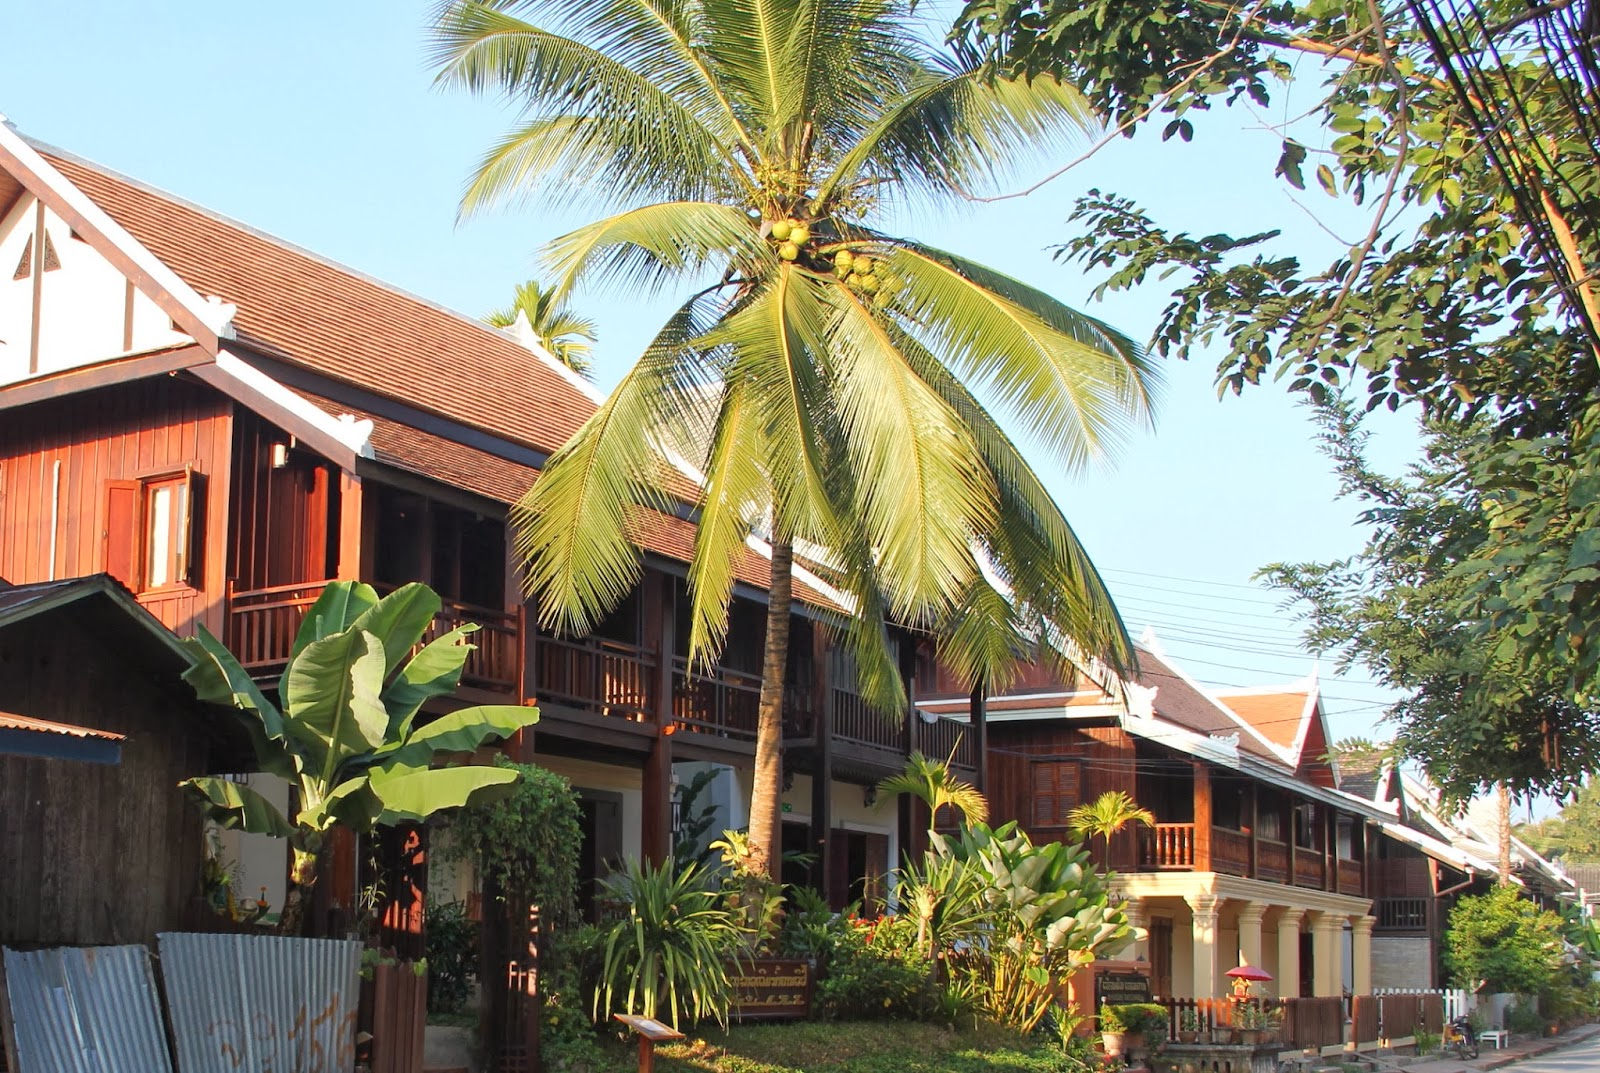 Charming French Colonial-style houses in Luang Prabang